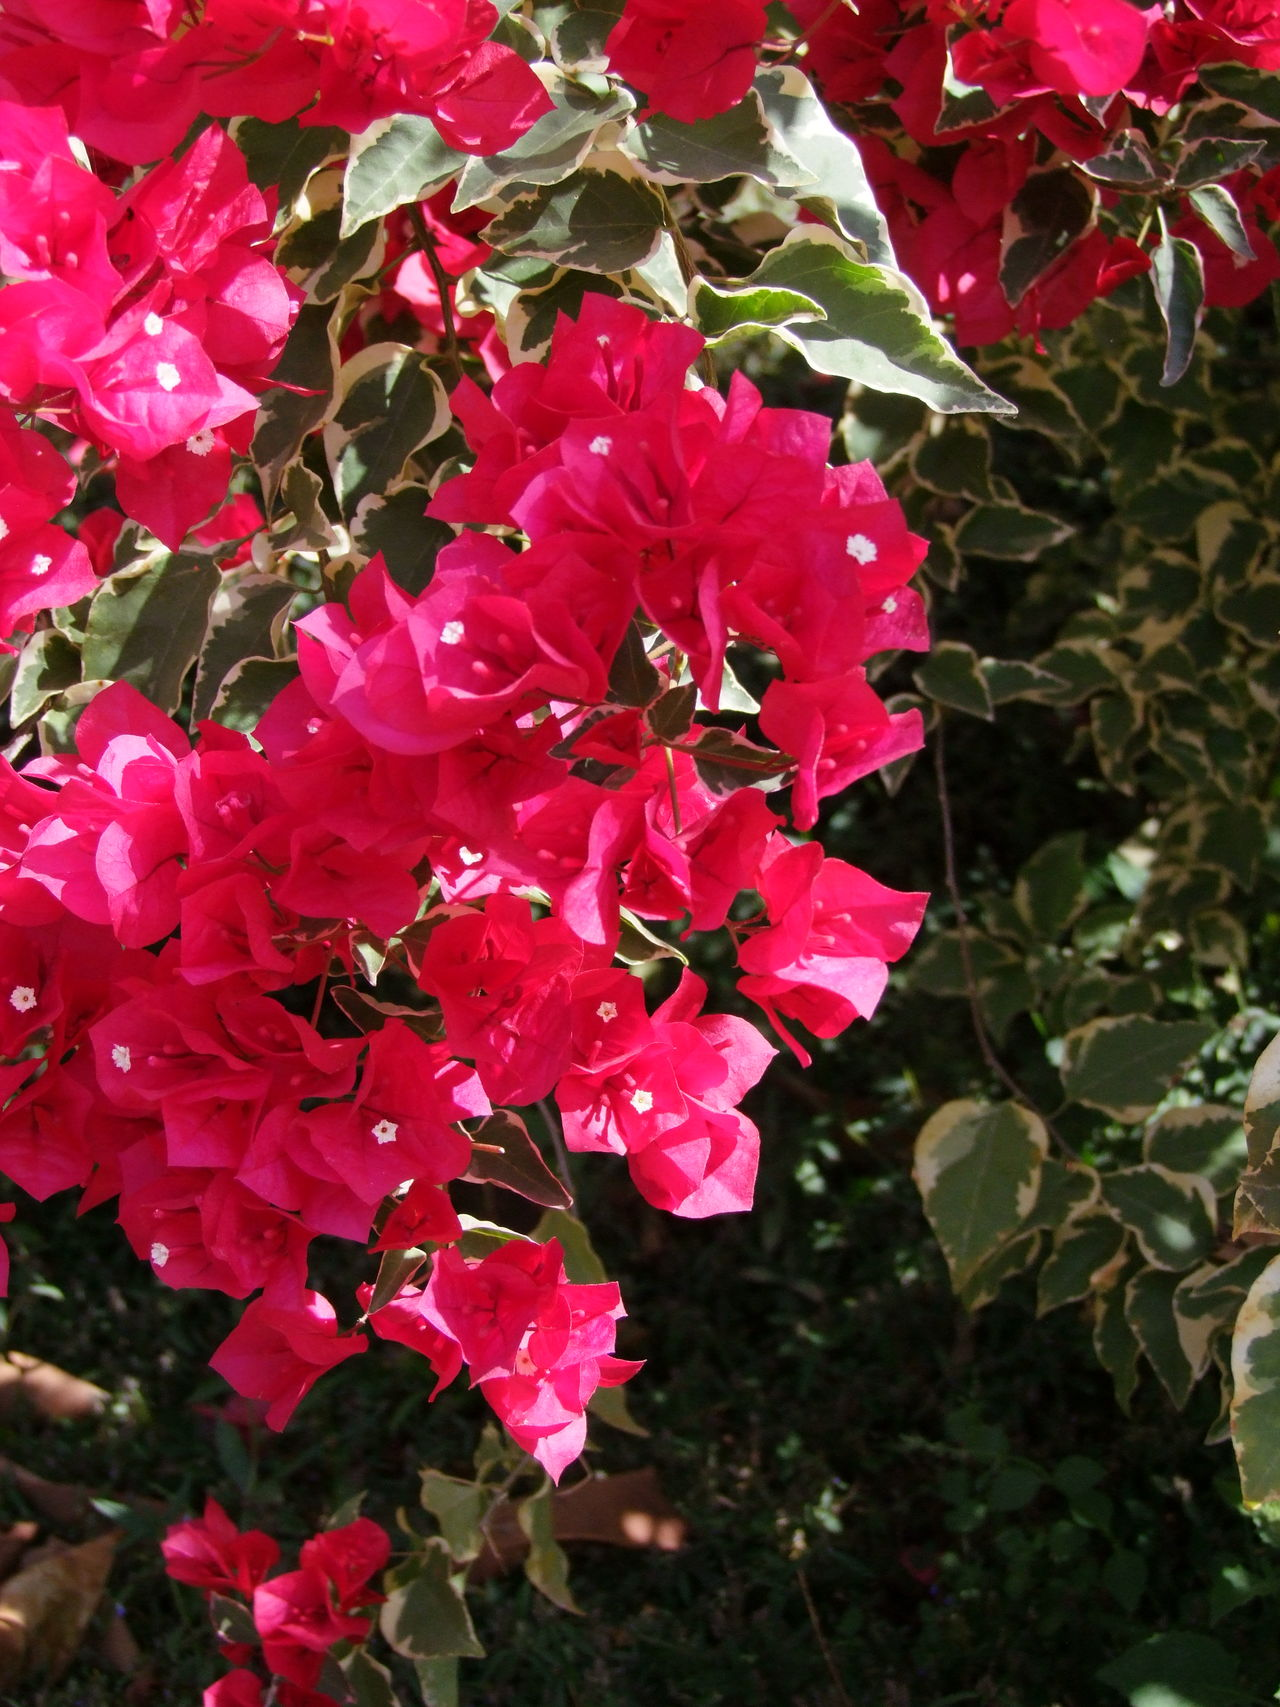 Bougainvillea RePink Coloured Flowers Beauty In Nature Blooming Bougainvillea Close-up Composition Flower Heads Flowers Fragility Freshness Full Frame Growth Myanmar Nature No People Outdoor Photography Petals Pink Color Plant Pyin Oo Lwin Red Red And Green Colours Sunlight And Shade